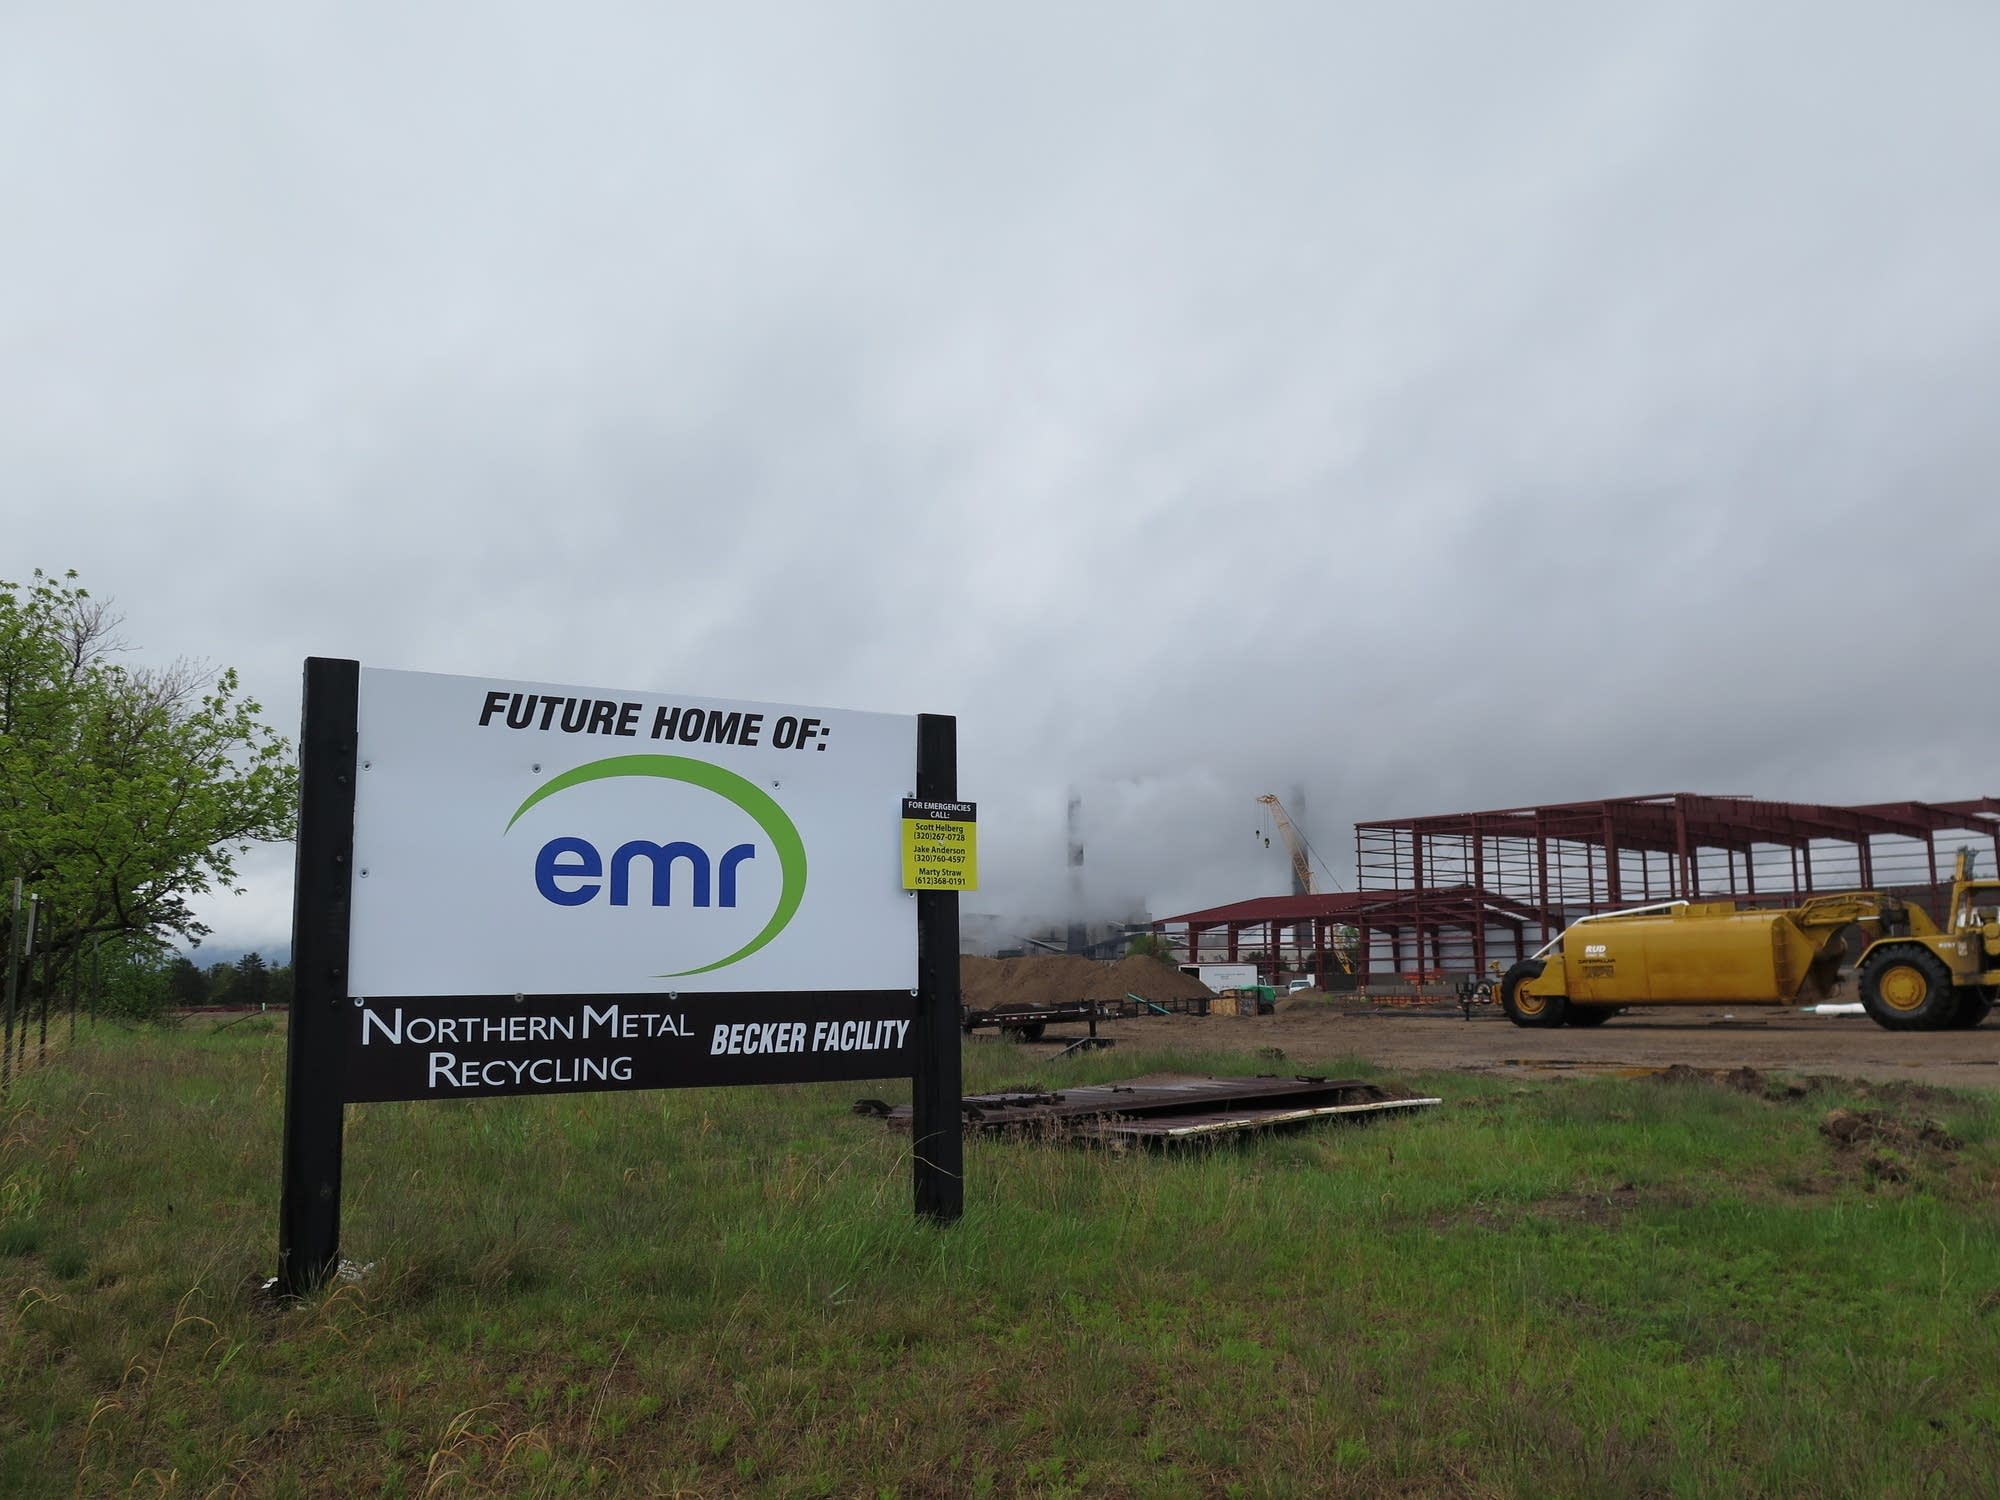 Construction is underway on the new Northern Metal Recycling facility.